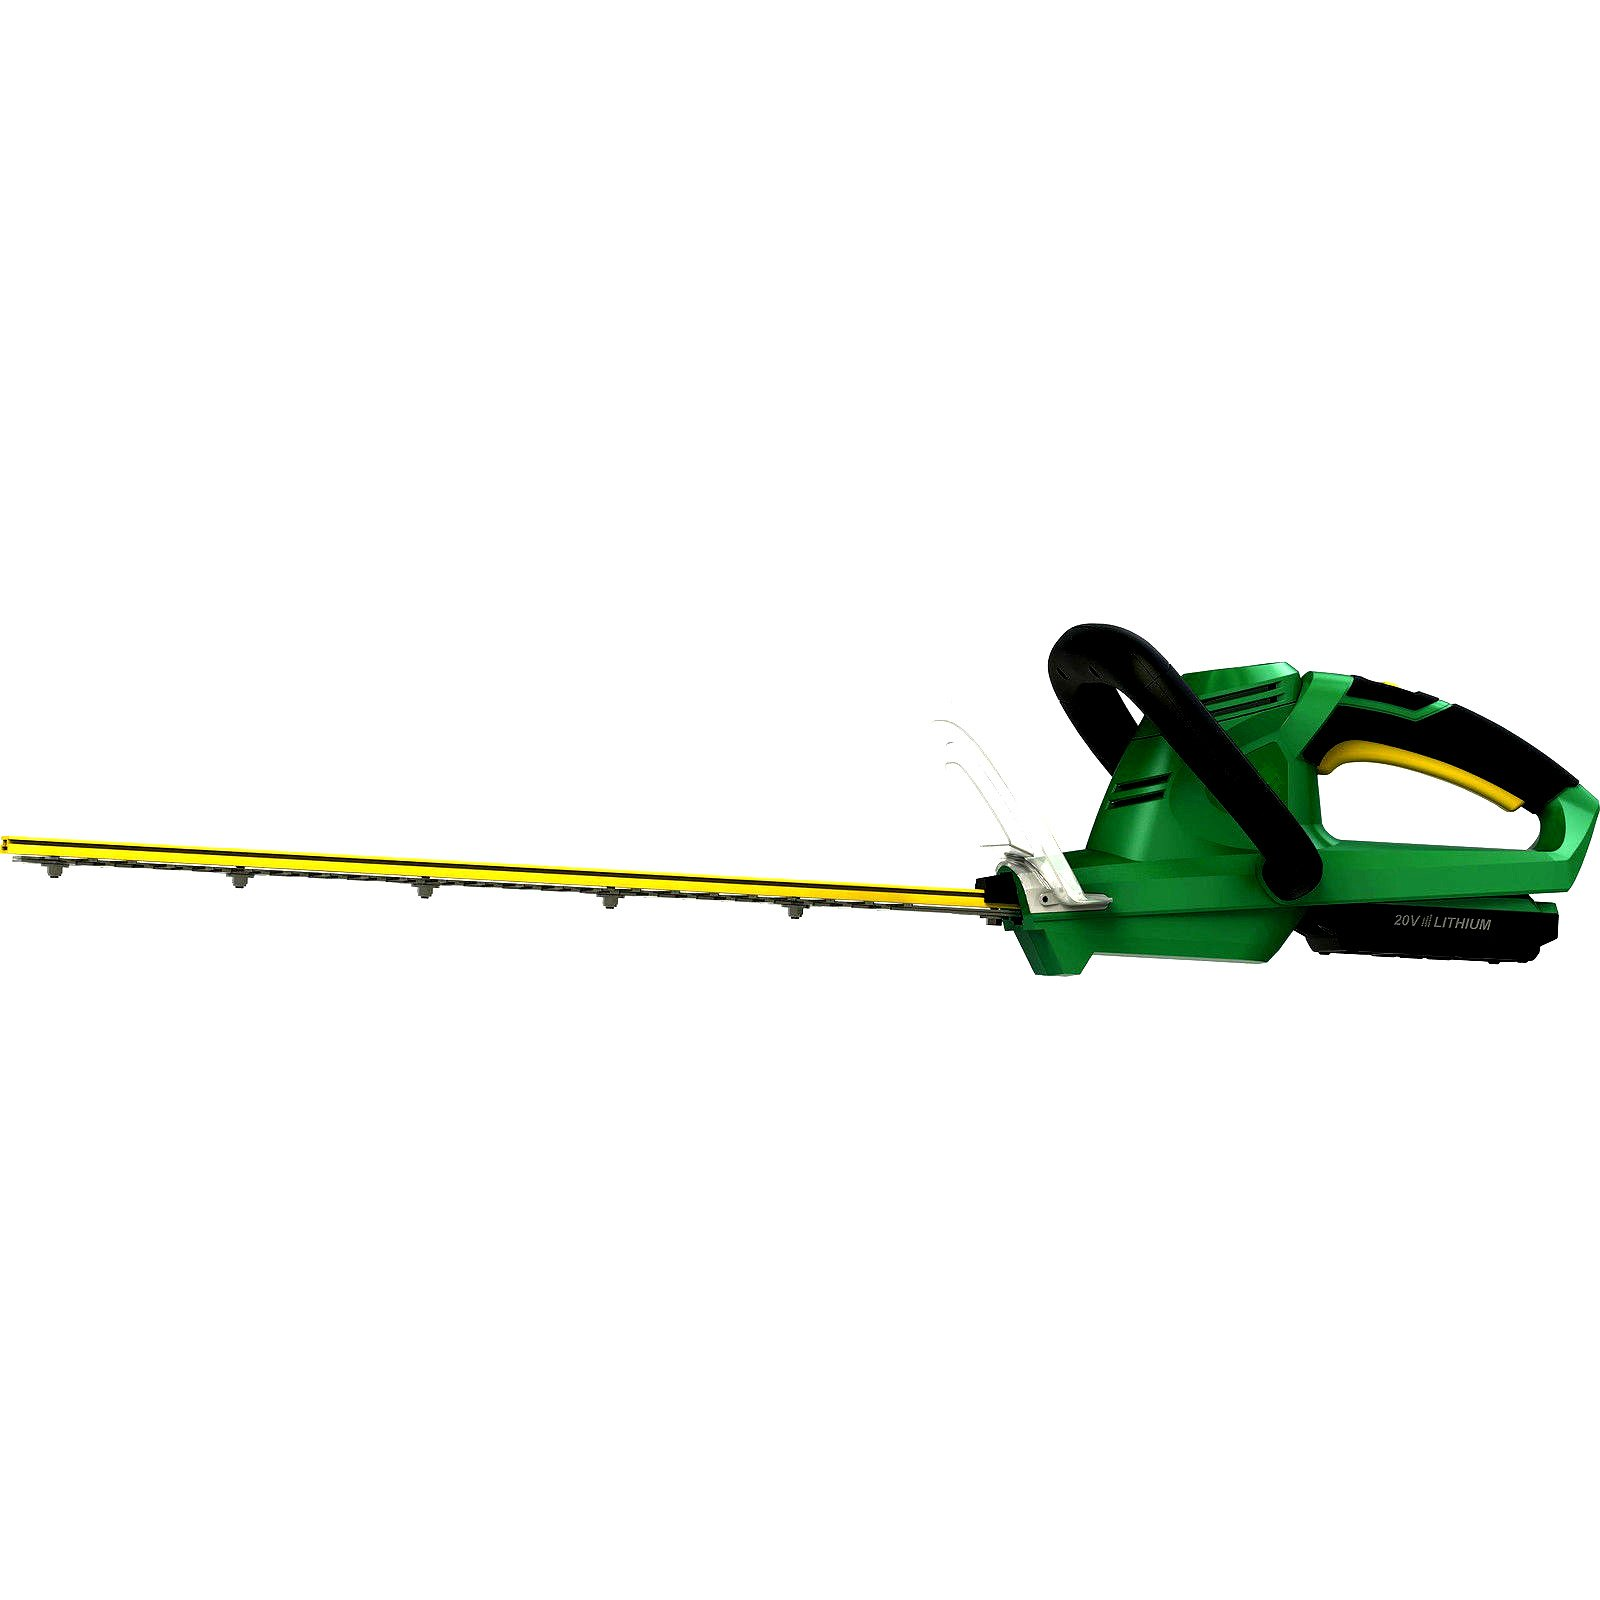 Outdoor Weed Hedge Trimmer Battery-Powered 20'' Dual Action With Battery Charger Gardening Tools Patio Garden Yard - Skroutz